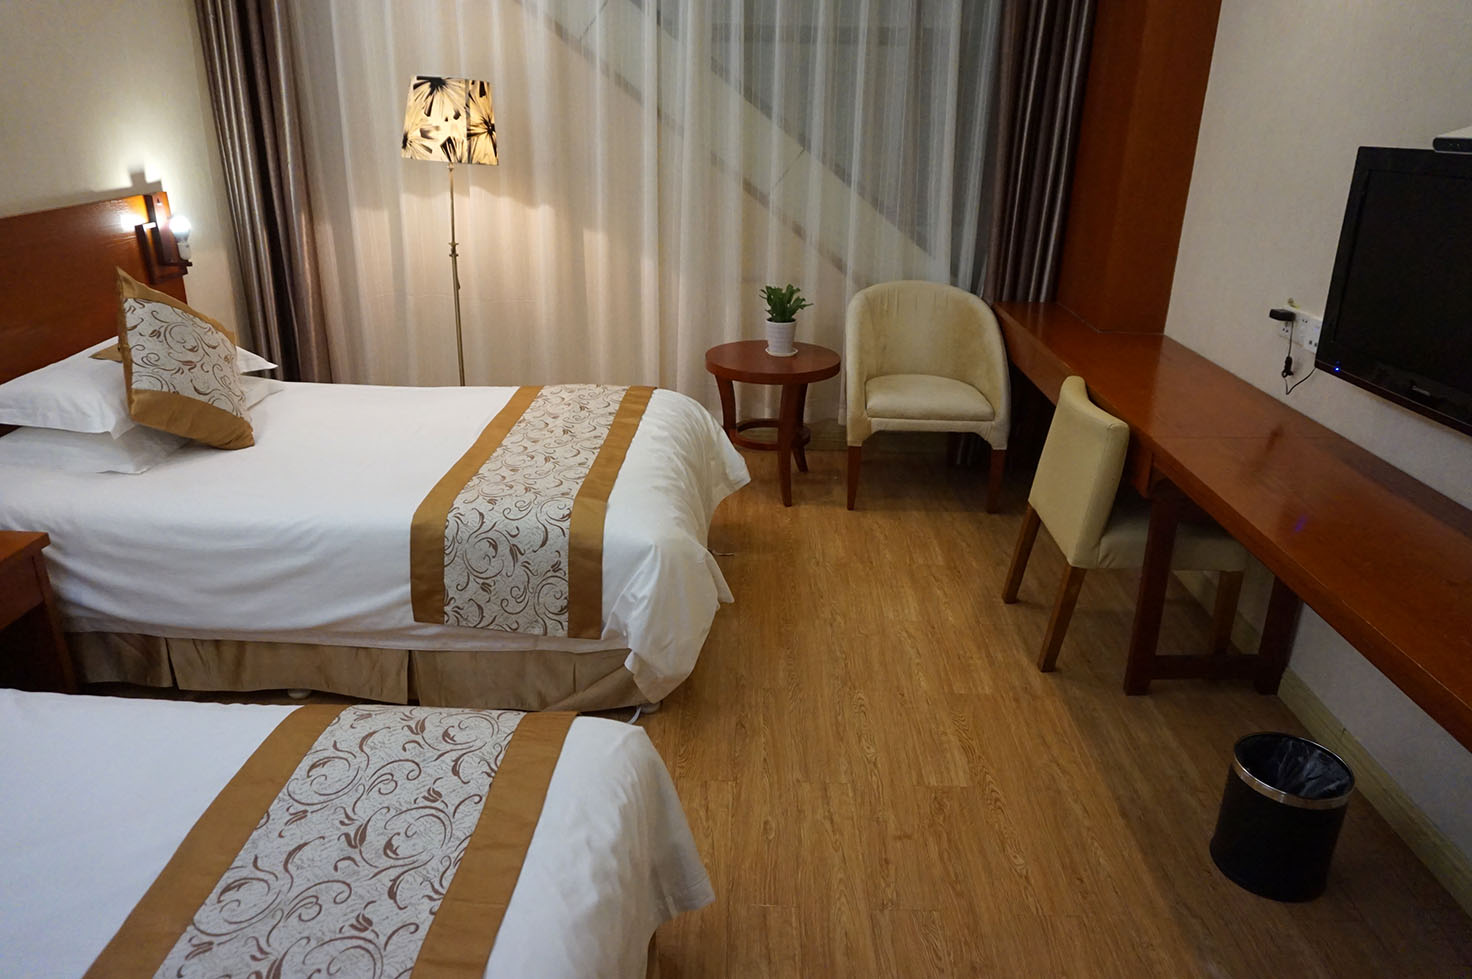 Where to Stay in Huangshan